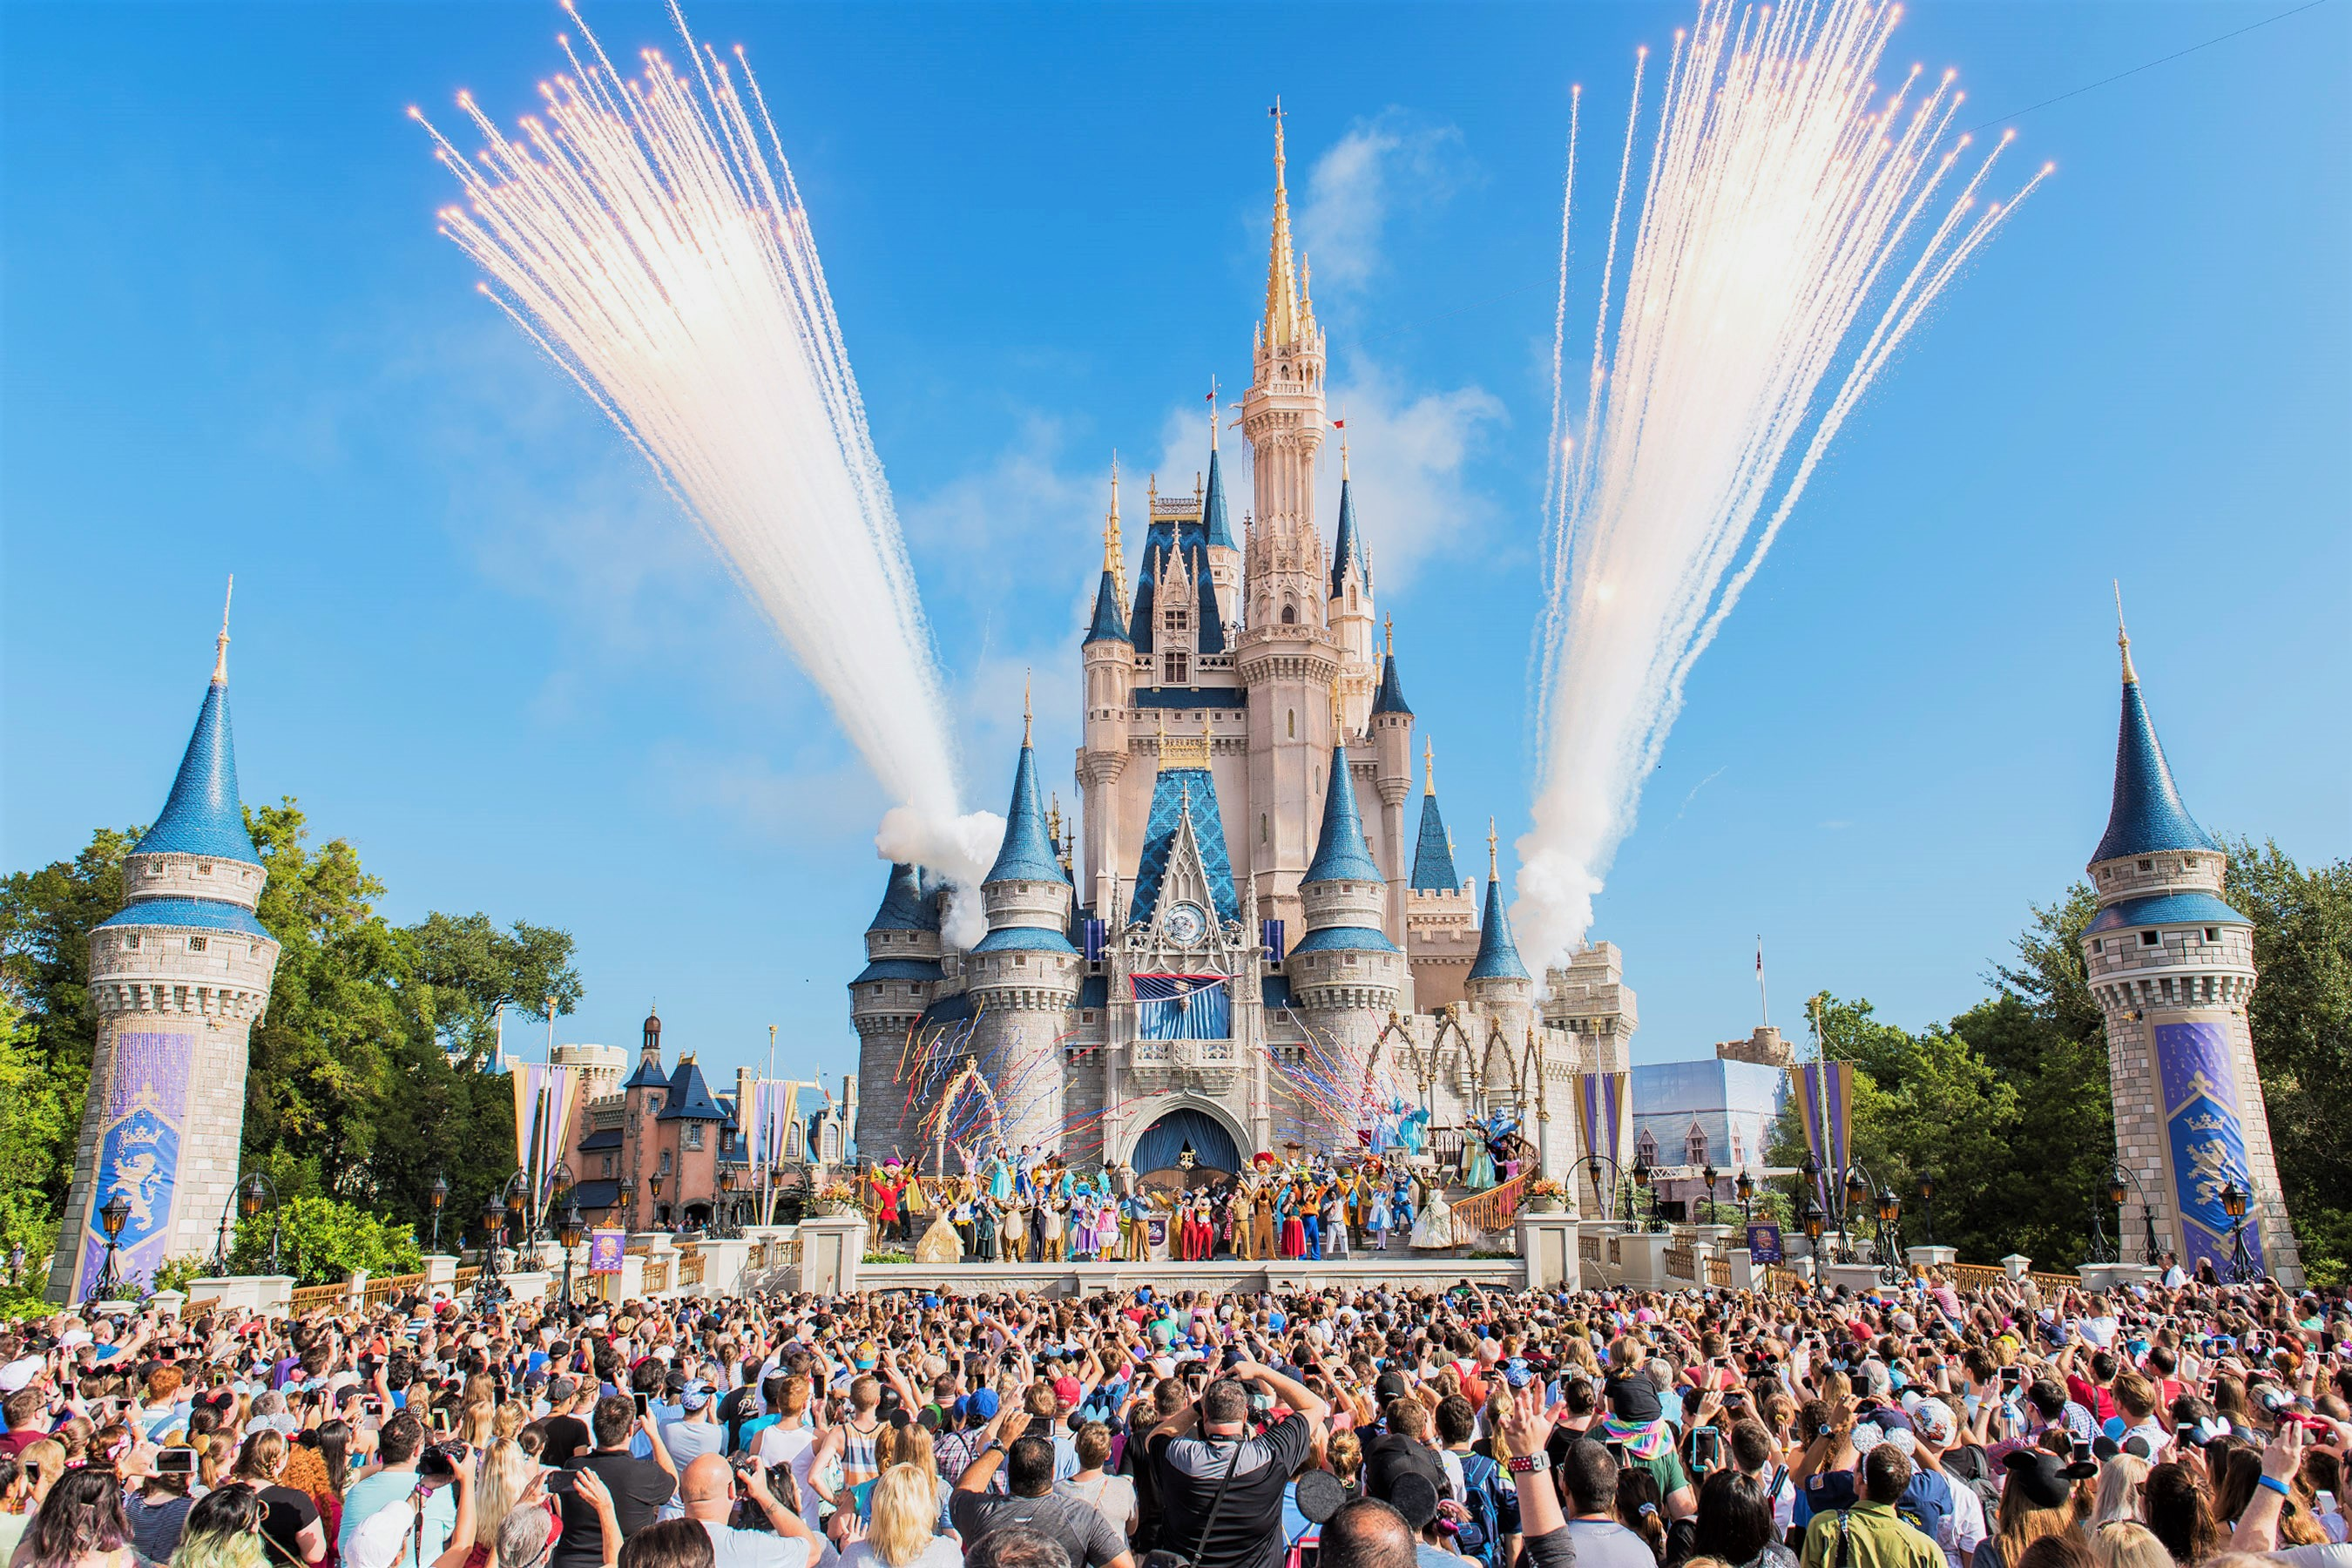 Mom's Viral Rant Calling for Disney World to Ban 'People Without Children' Spurs Online Debate